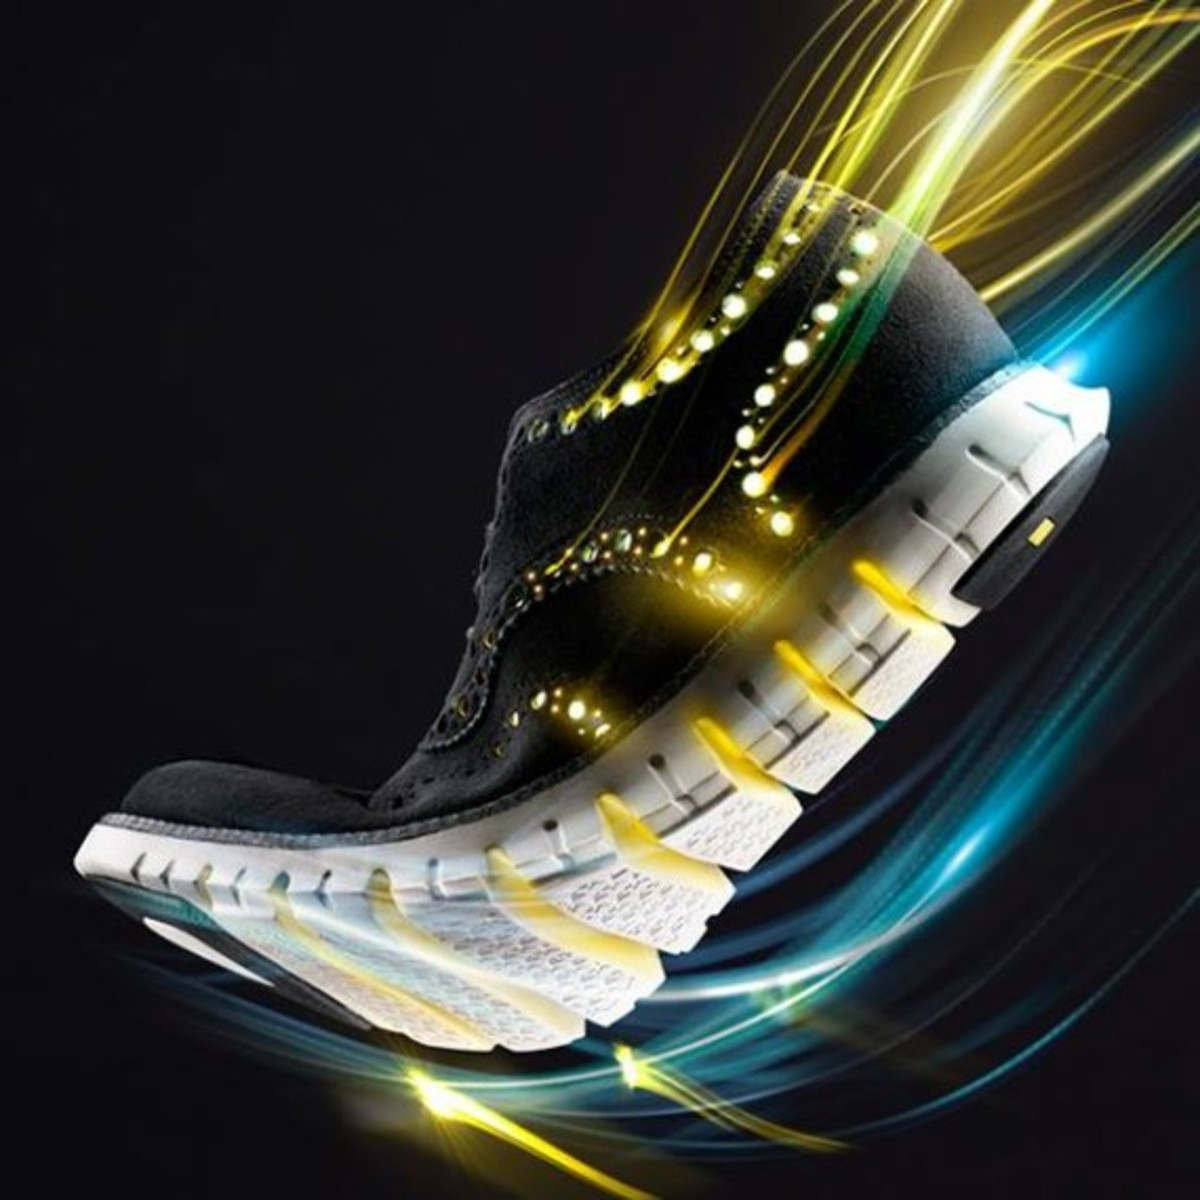 Cole Haan ZeroGrand - Its Lightest and Most Flexible Footwear To Date - 0